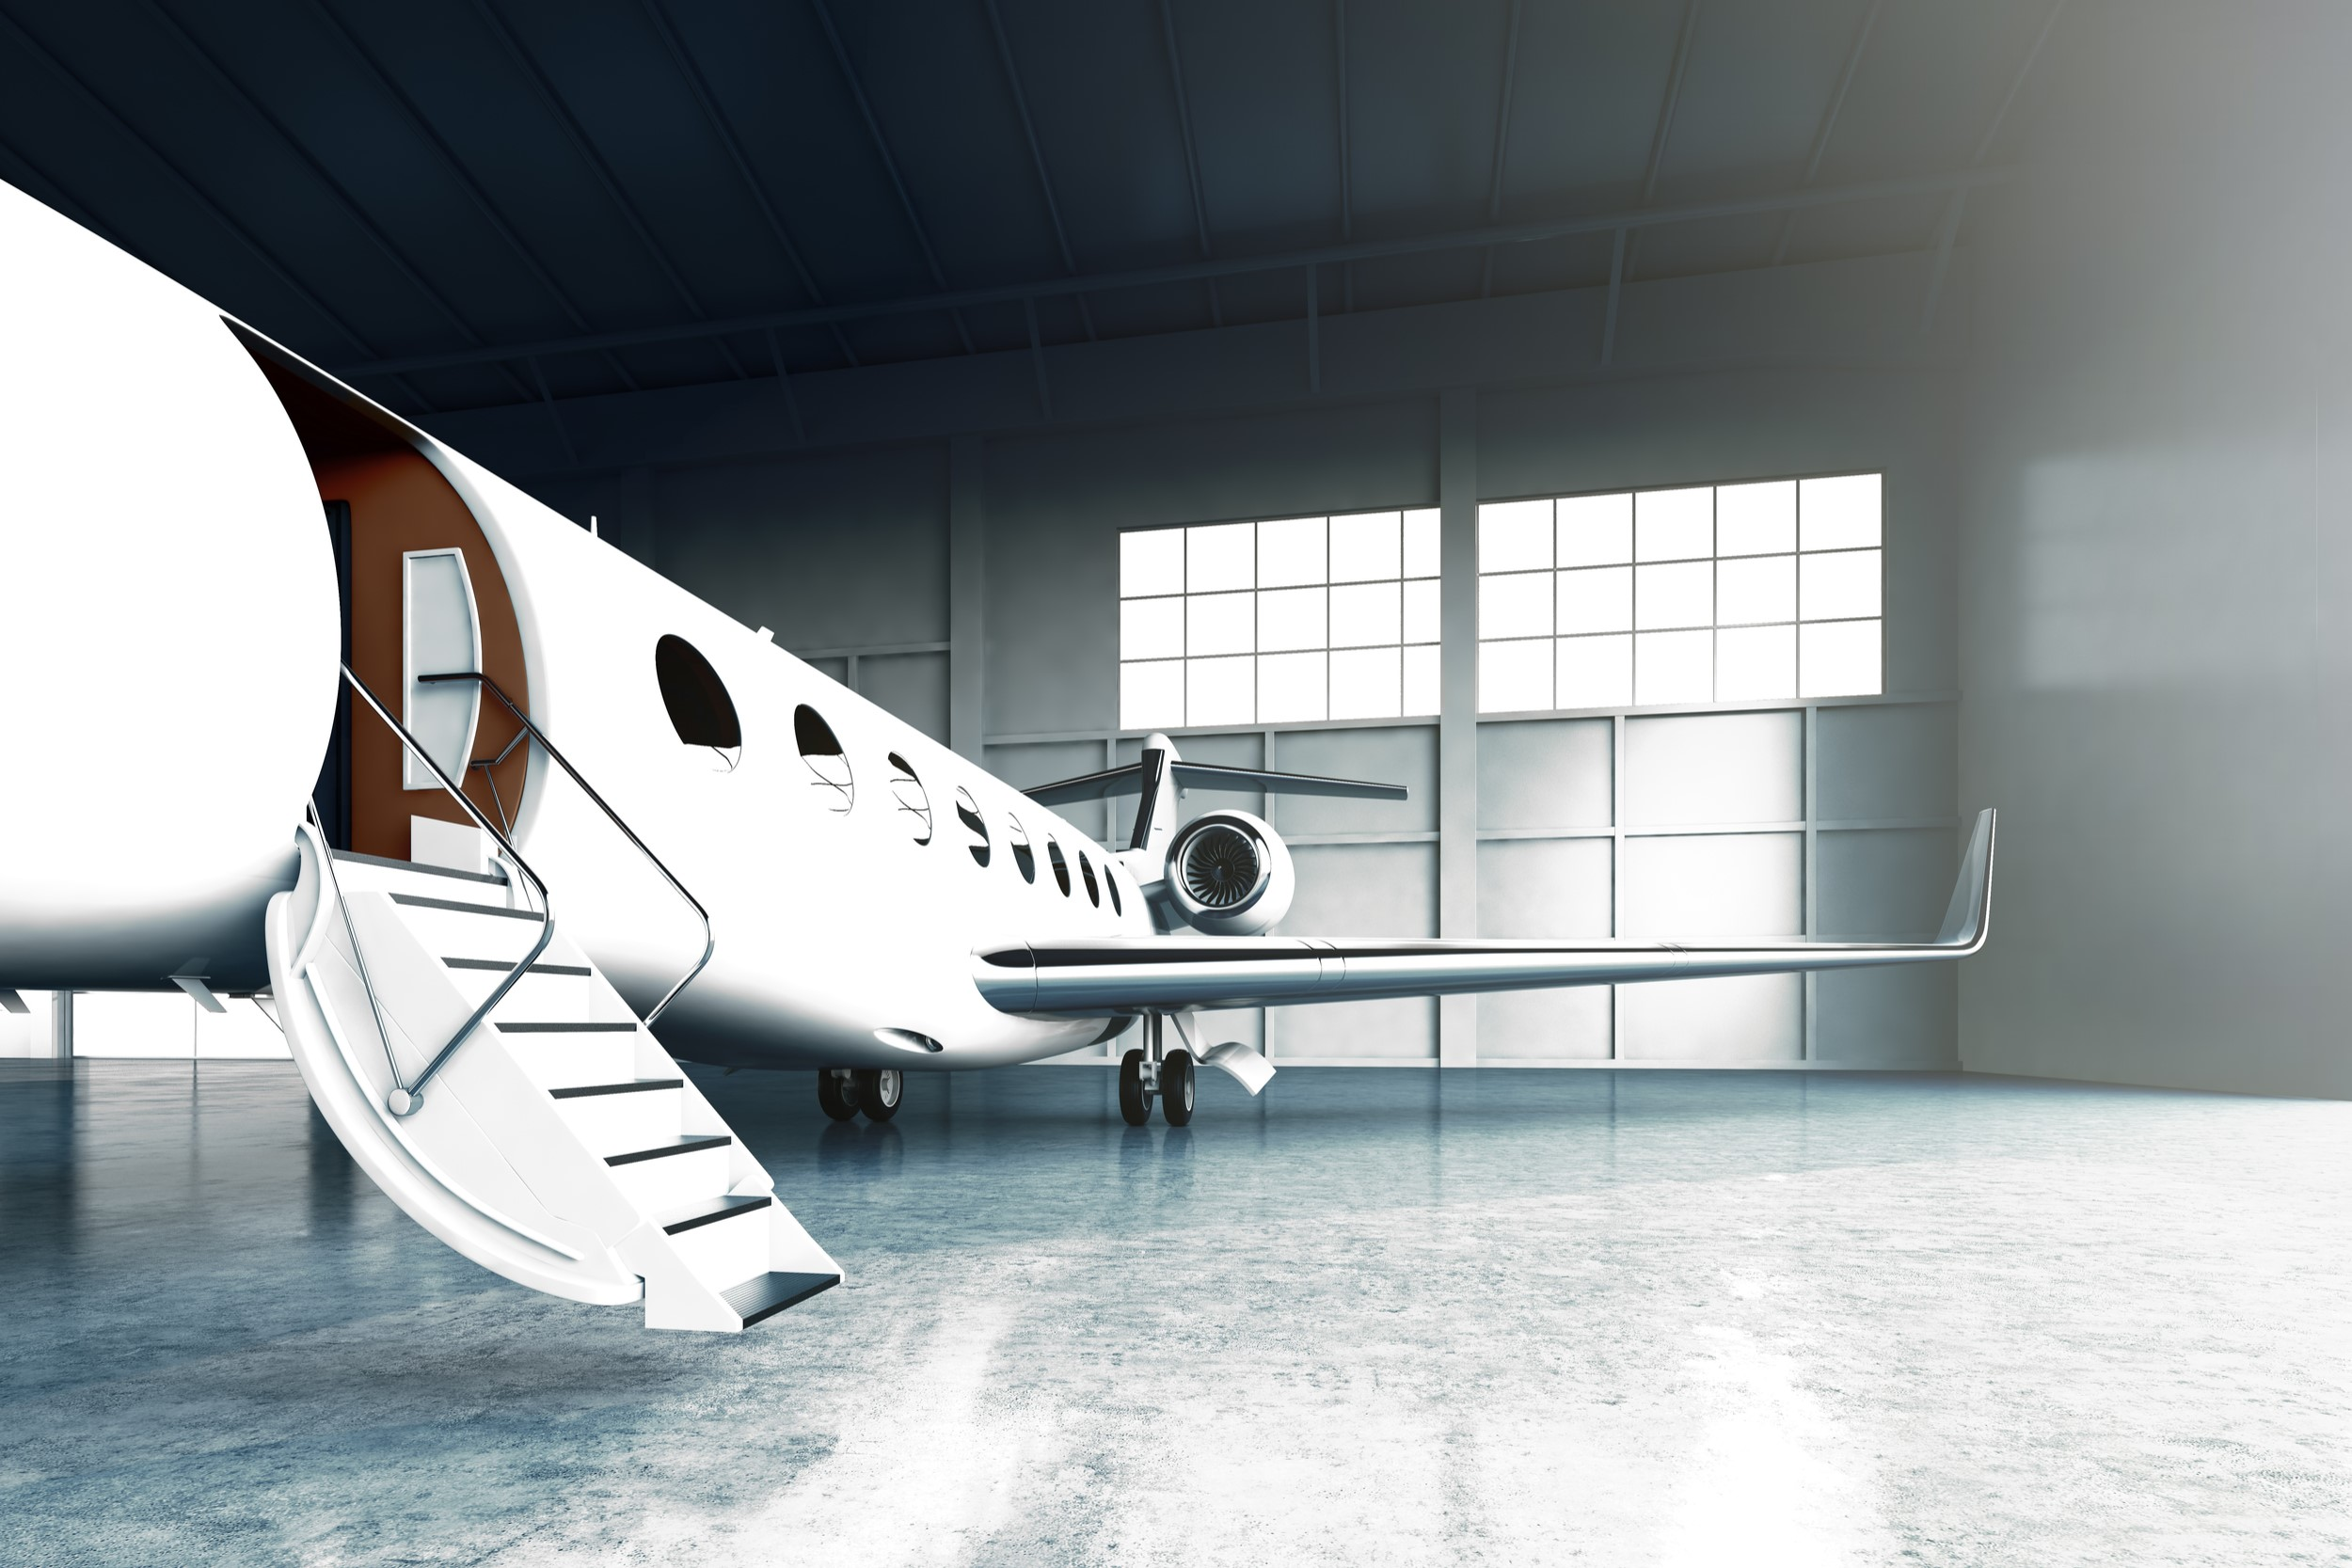 A white luxury private jet sits in a hangar with its door open